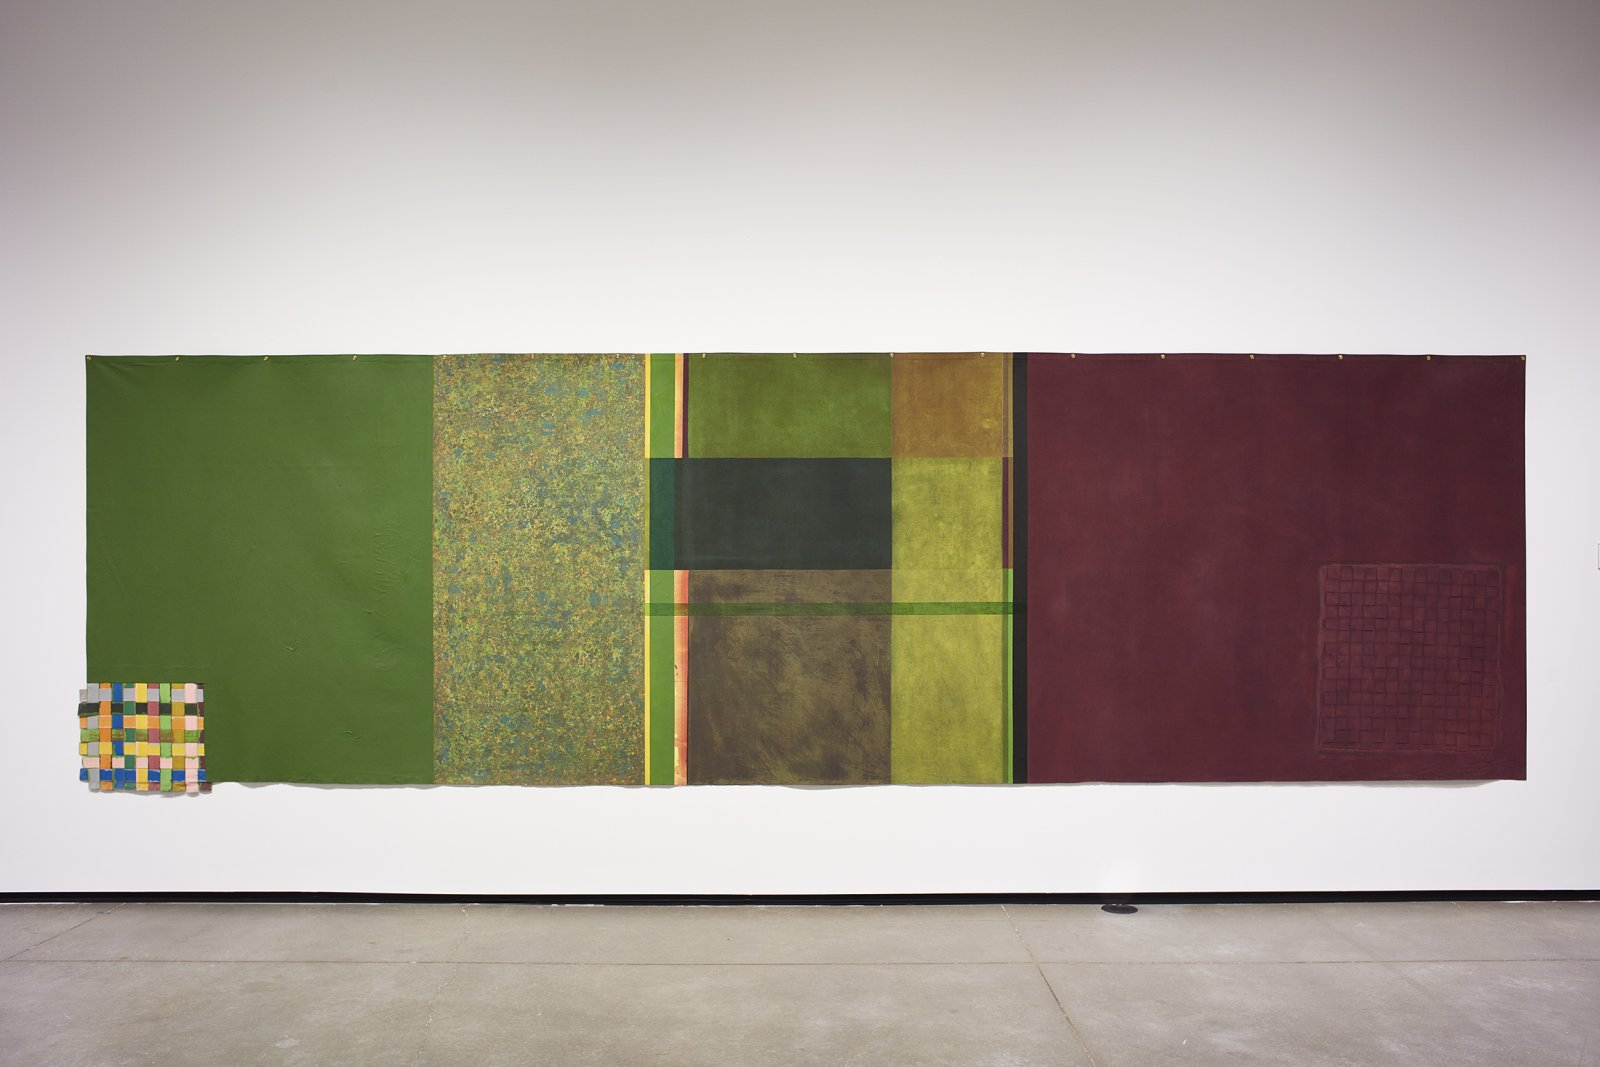 Ron Moppett, Bilberry Return, 1972, acrylic on canvas, 71 x 237 in. (180 x 602 cm). Installation view, Every Story Has Two Sides, Art Gallery of Alberta, Edmonton, 2016 by Damian Moppett